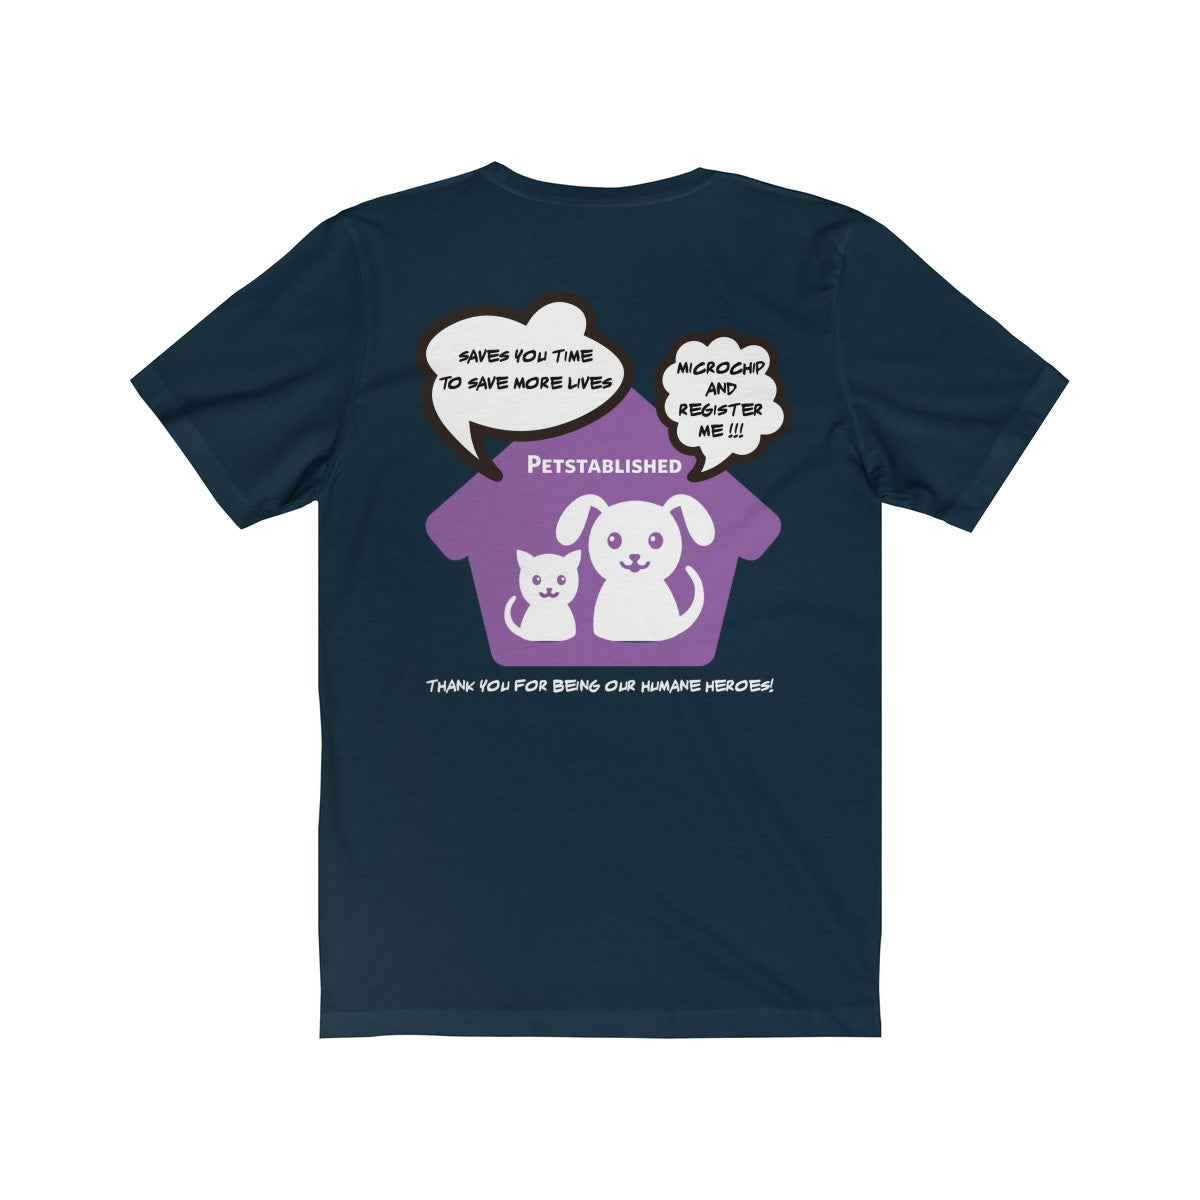 Expo Tee Big Paw - Melissa (L) - Allthingsfrenchie LLC